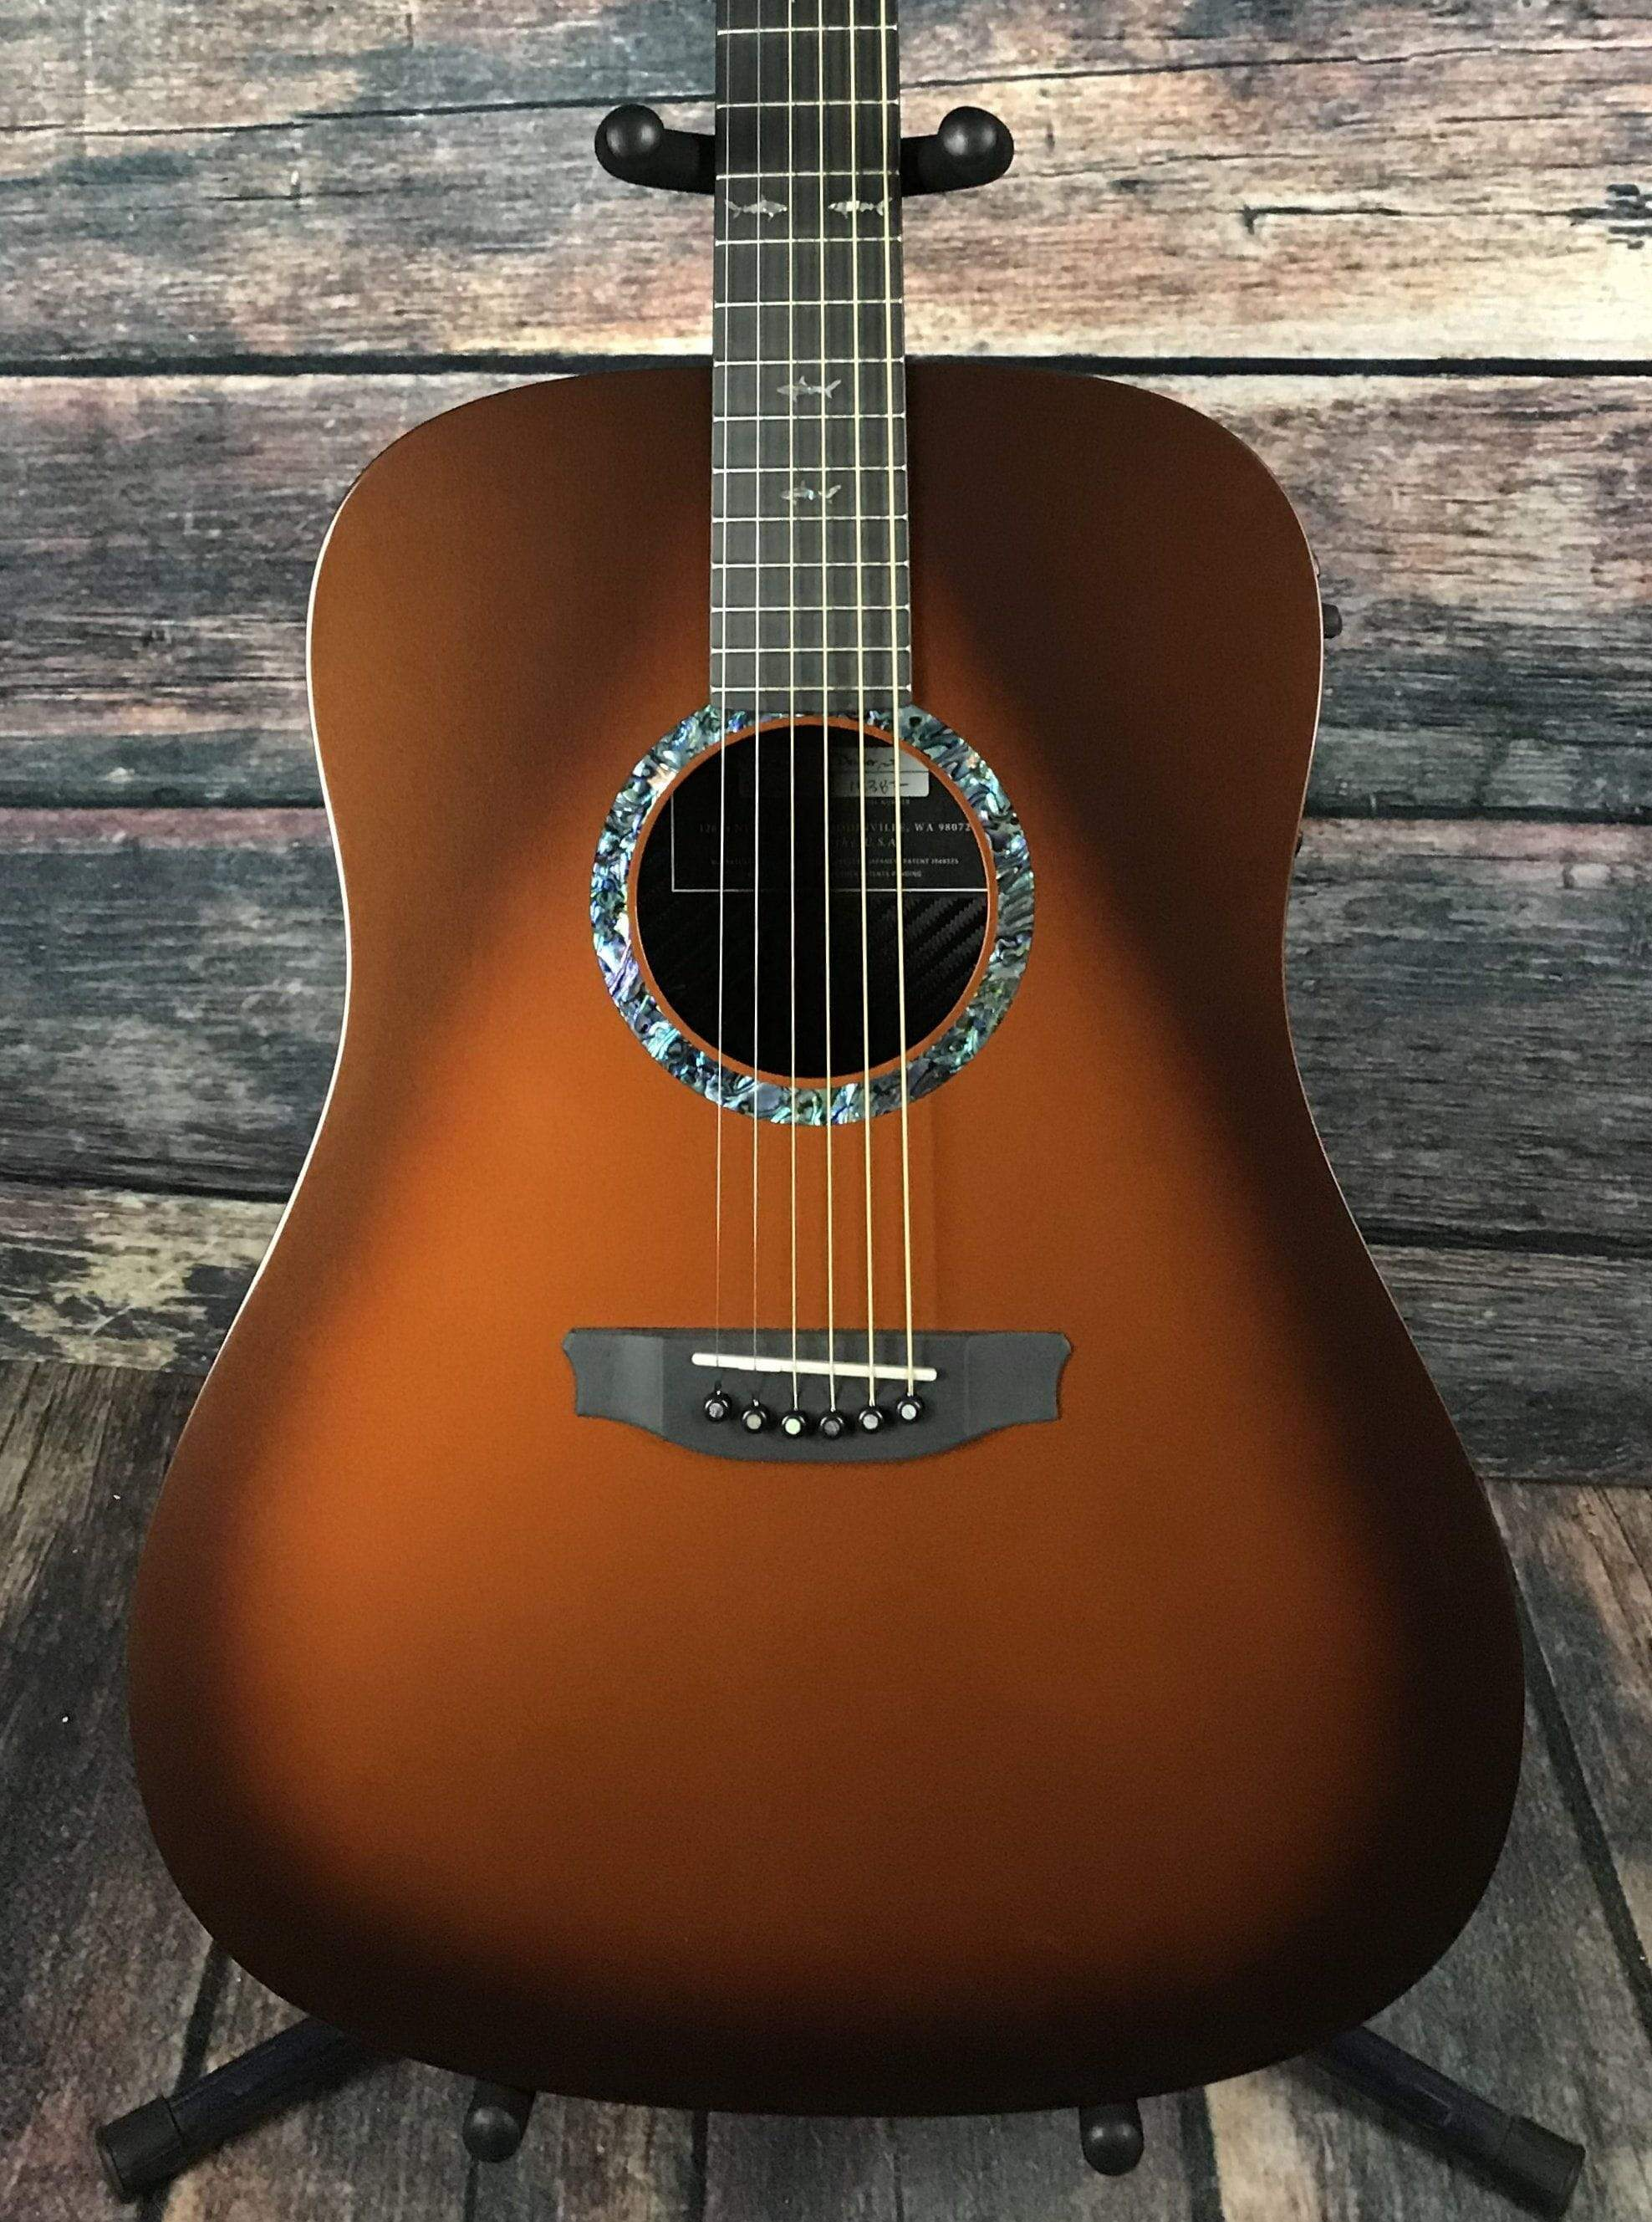 rainsong left handed dr1000n2t acoustic electric dreadnought guitar to. Black Bedroom Furniture Sets. Home Design Ideas